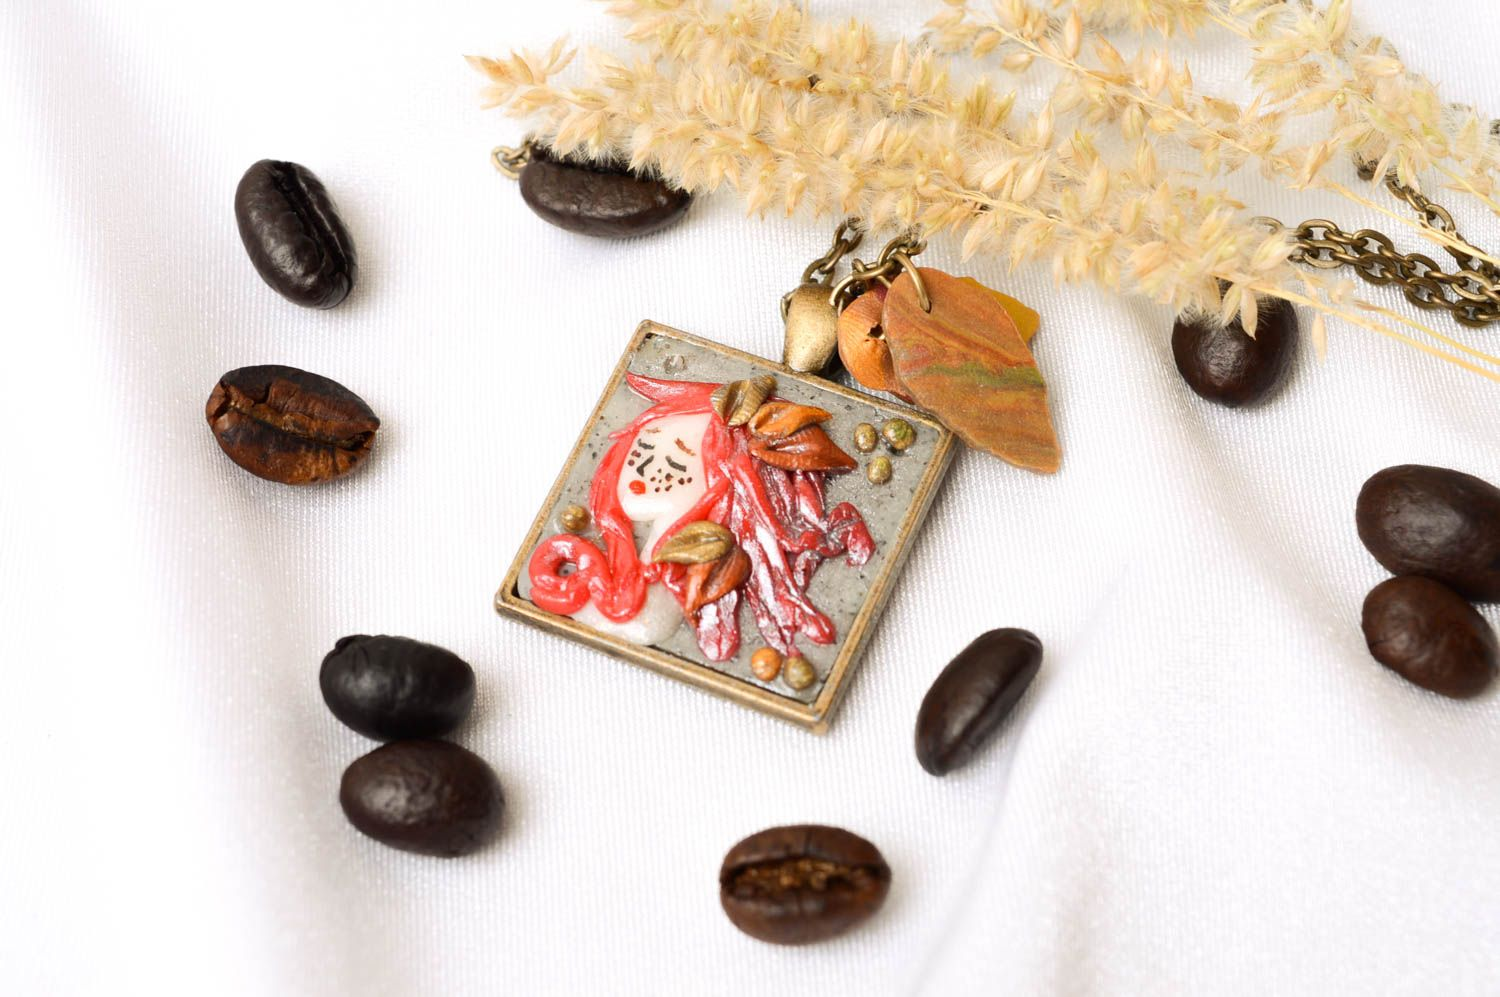 Handmade jewelry polymer clay pendant necklace fashion accessories for women photo 1